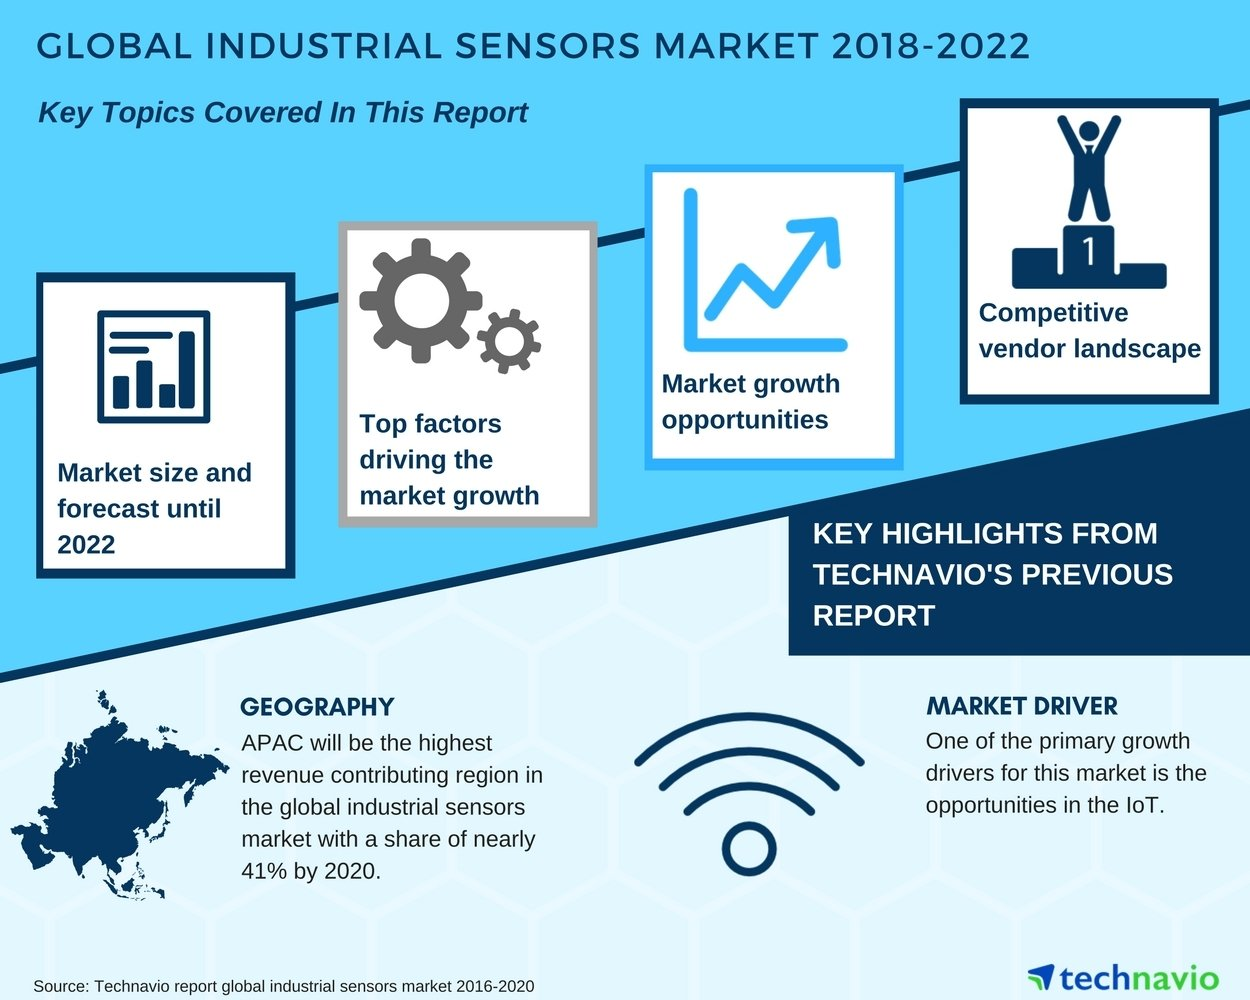 Global Industrial Sensors Market - Opportunities in the IoT to Boost ...